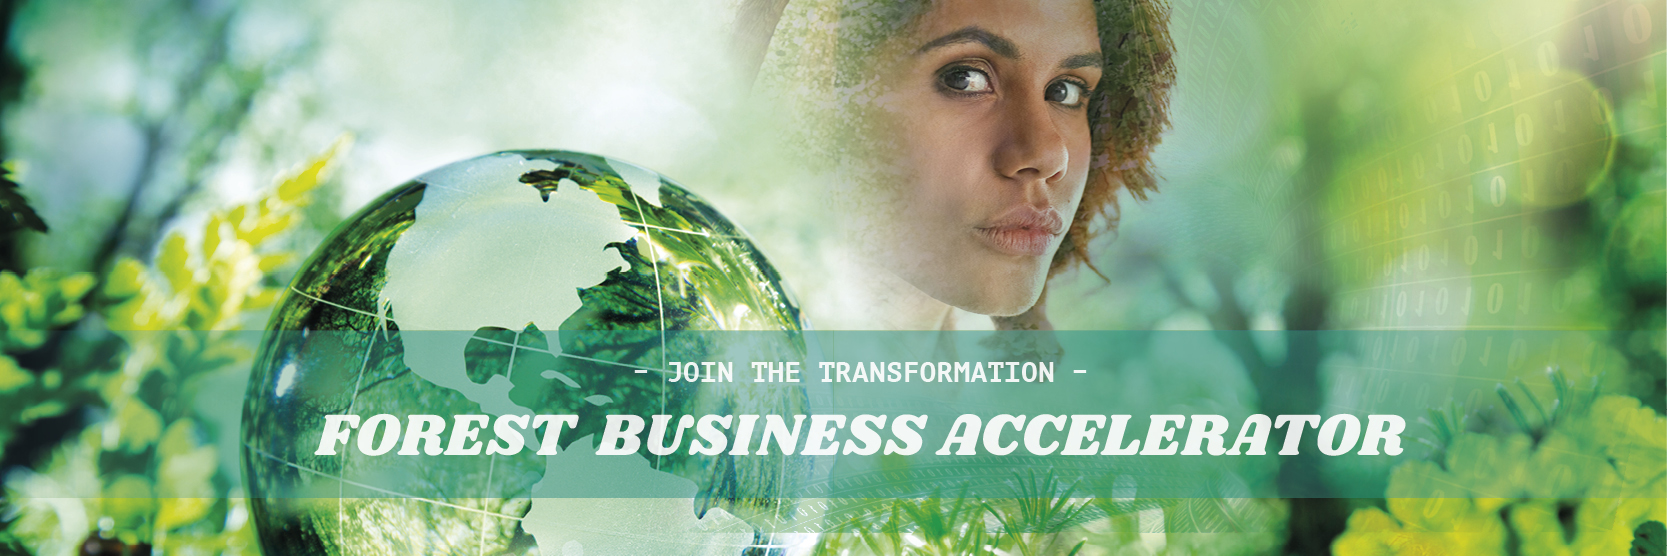 4689 Banner Forest Business Accelerator